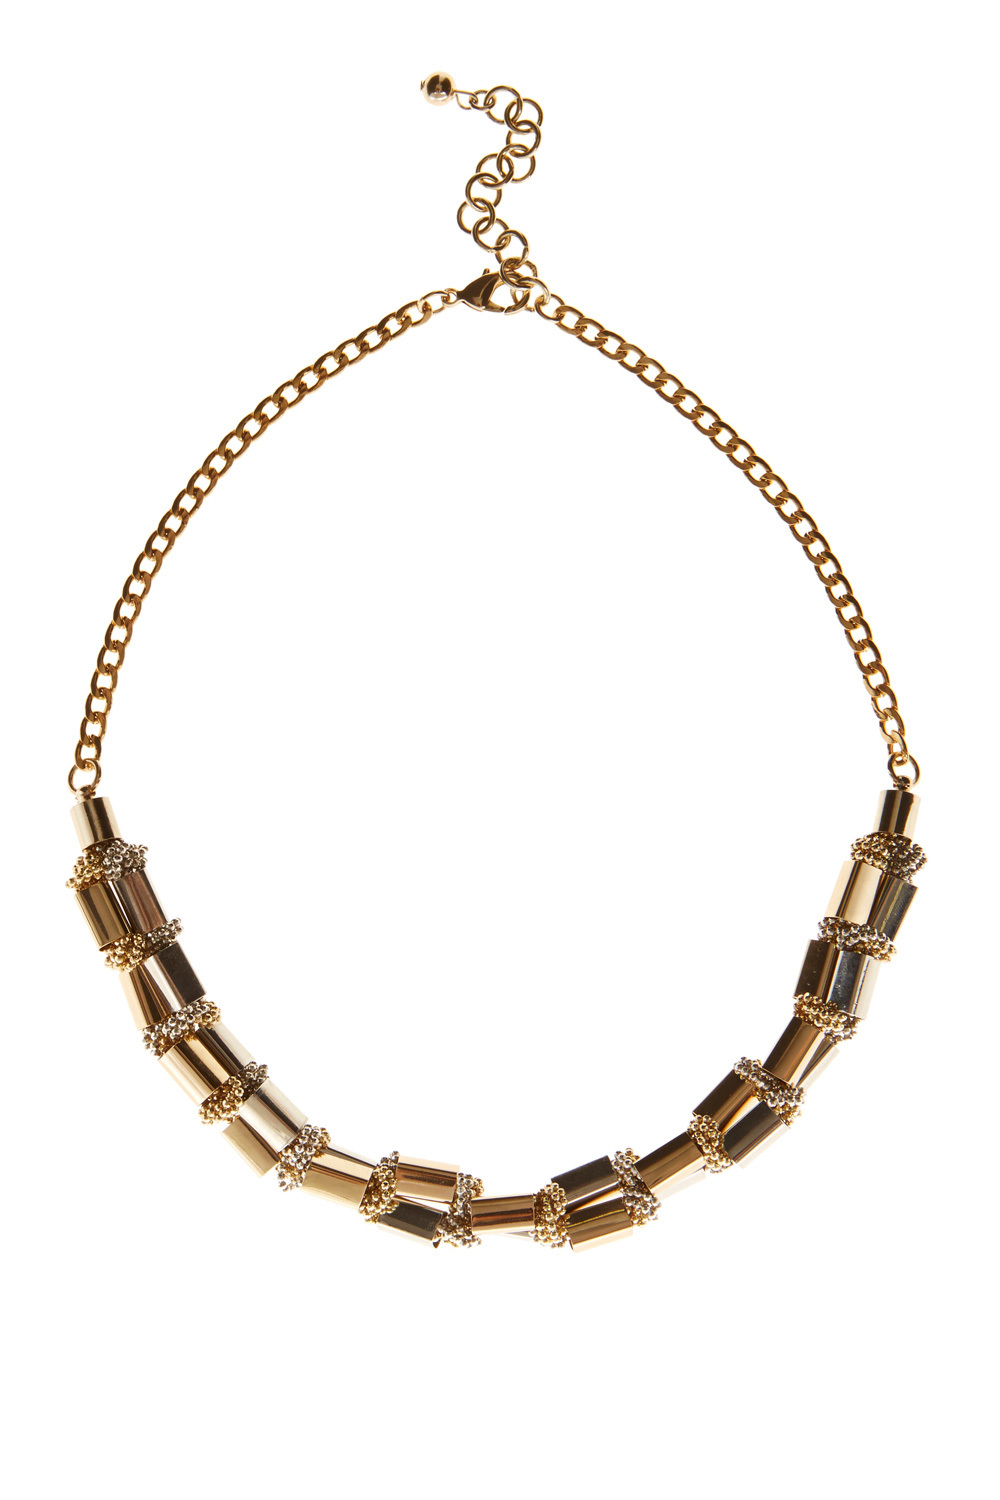 Lucia Block Bar Necklace - predominant colour: gold; occasions: evening, creative work; length: short; size: standard; material: chain/metal; finish: metallic; style: bib/statement; season: a/w 2016; wardrobe: highlight